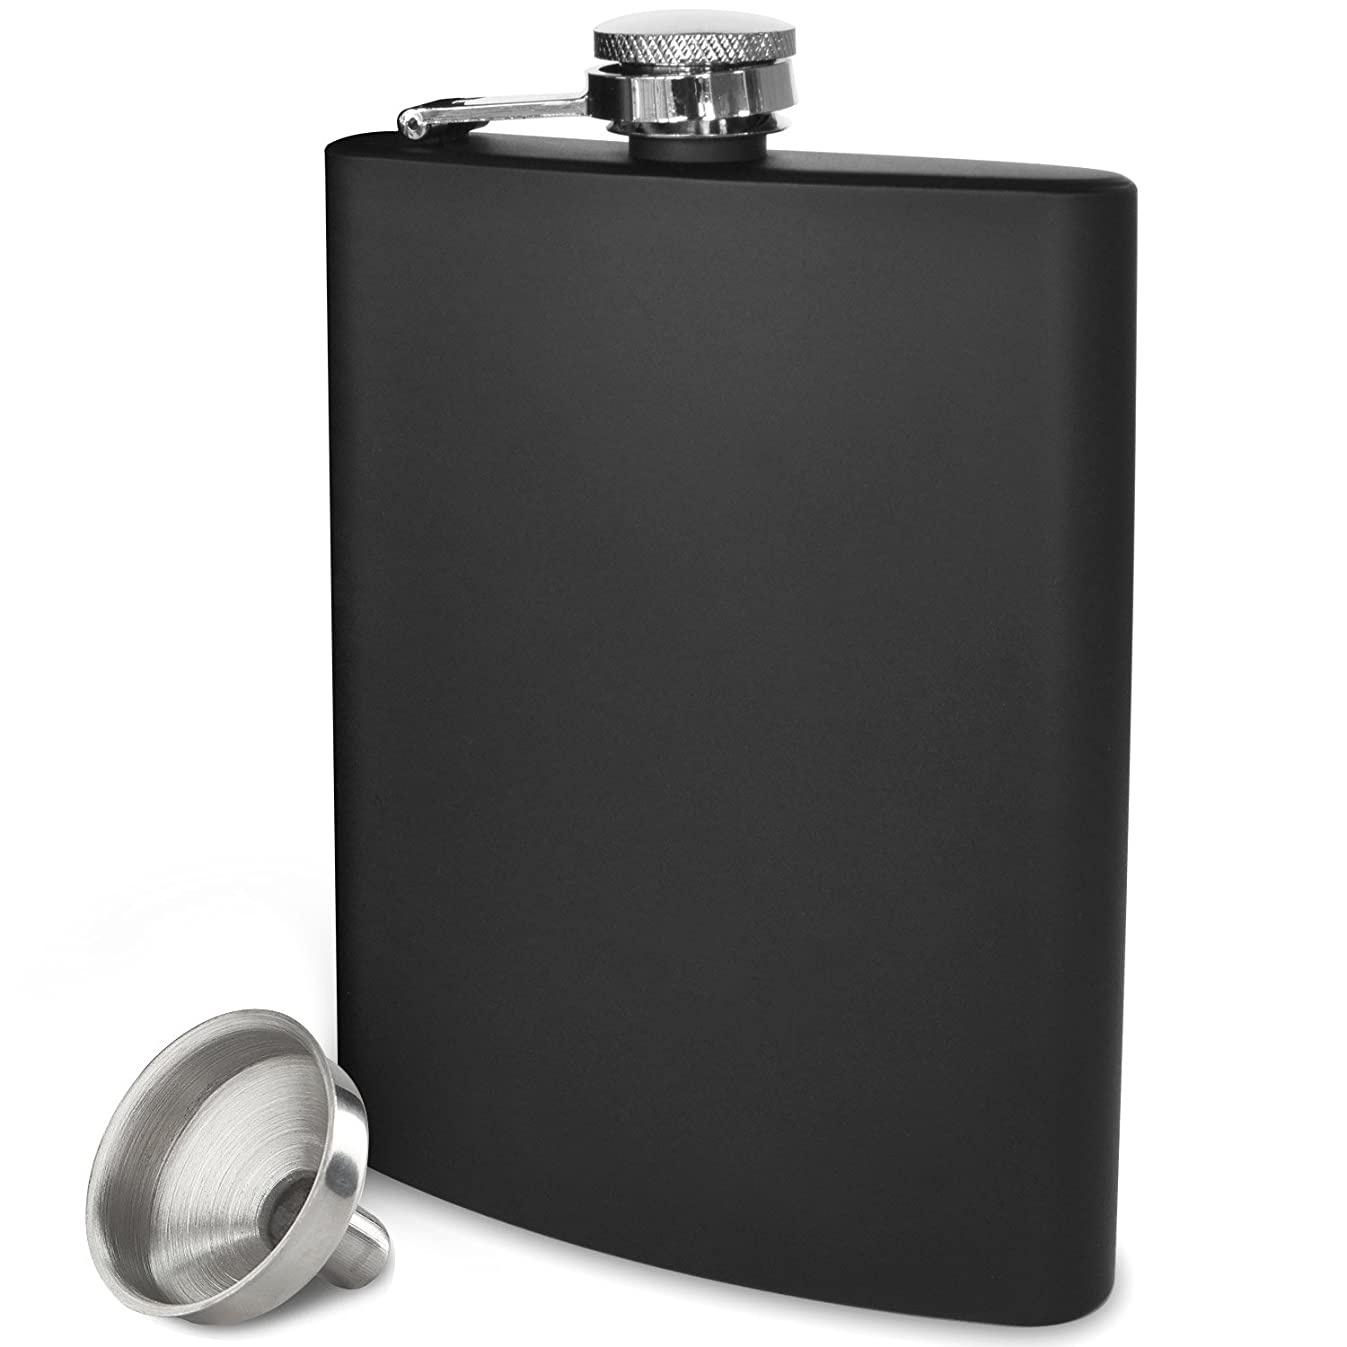 Premium 8 oz Black, Leakproof, Flask - Highest Food Grade (304) Stainless Steel - Liquor Hip Flasks - Free Bonus Funnel and Black Gift Box (Matte Black, 8 Ounce)